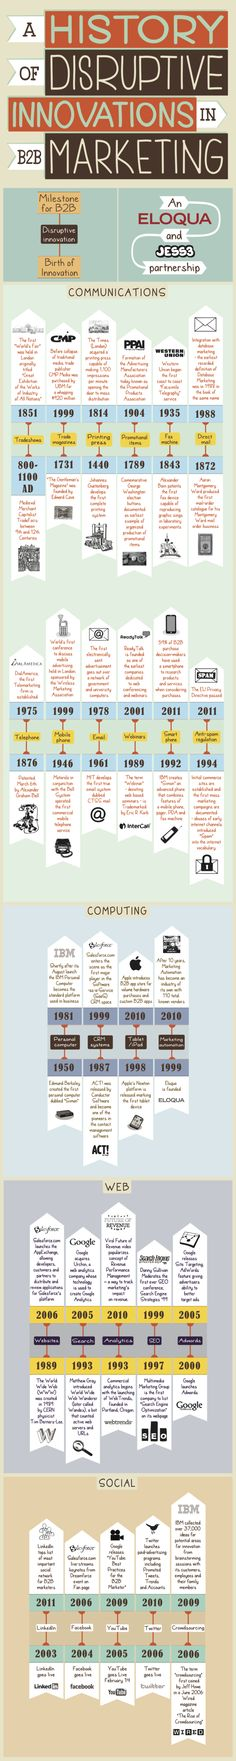 The history of disruptive innovations in B2B marketing: infographic #albertobokos